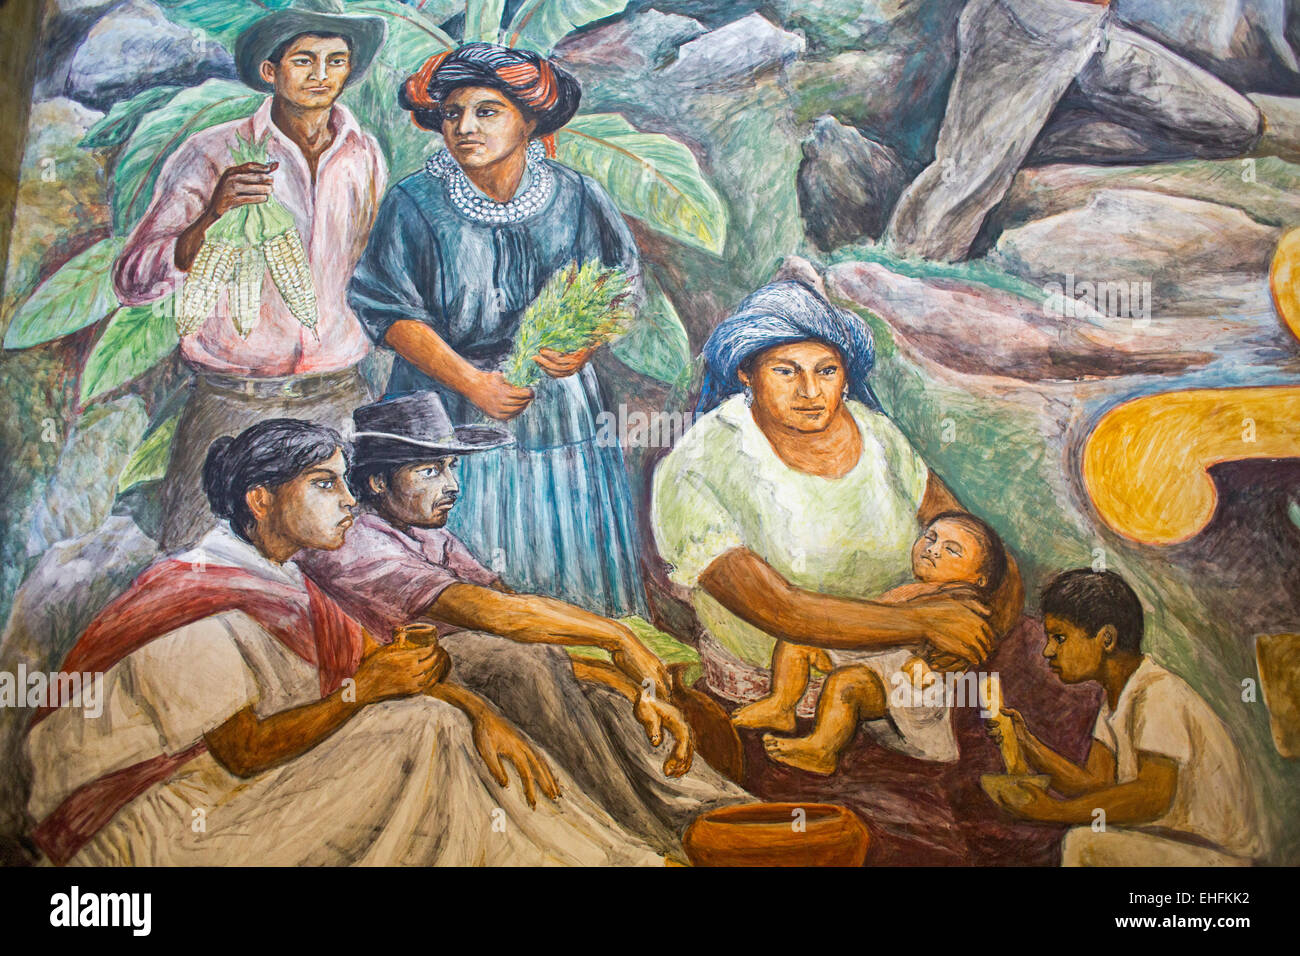 Oaxaca, Mexico - Details of a painting celebrating Oaxaca history and culture by Arturo García Bustos. Stock Photo